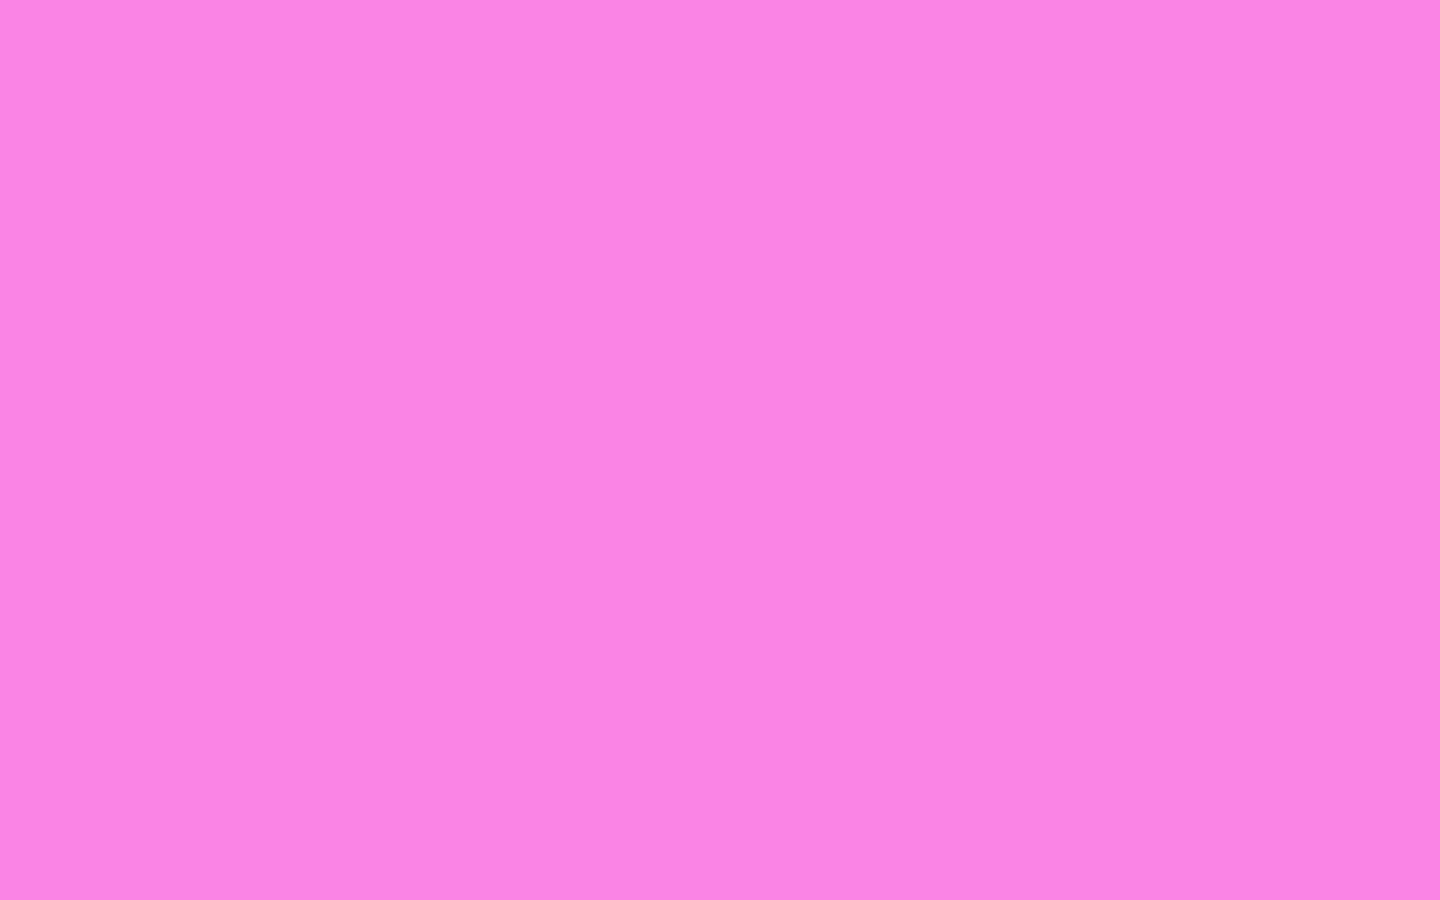 1440x900 Pale Magenta Solid Color Background